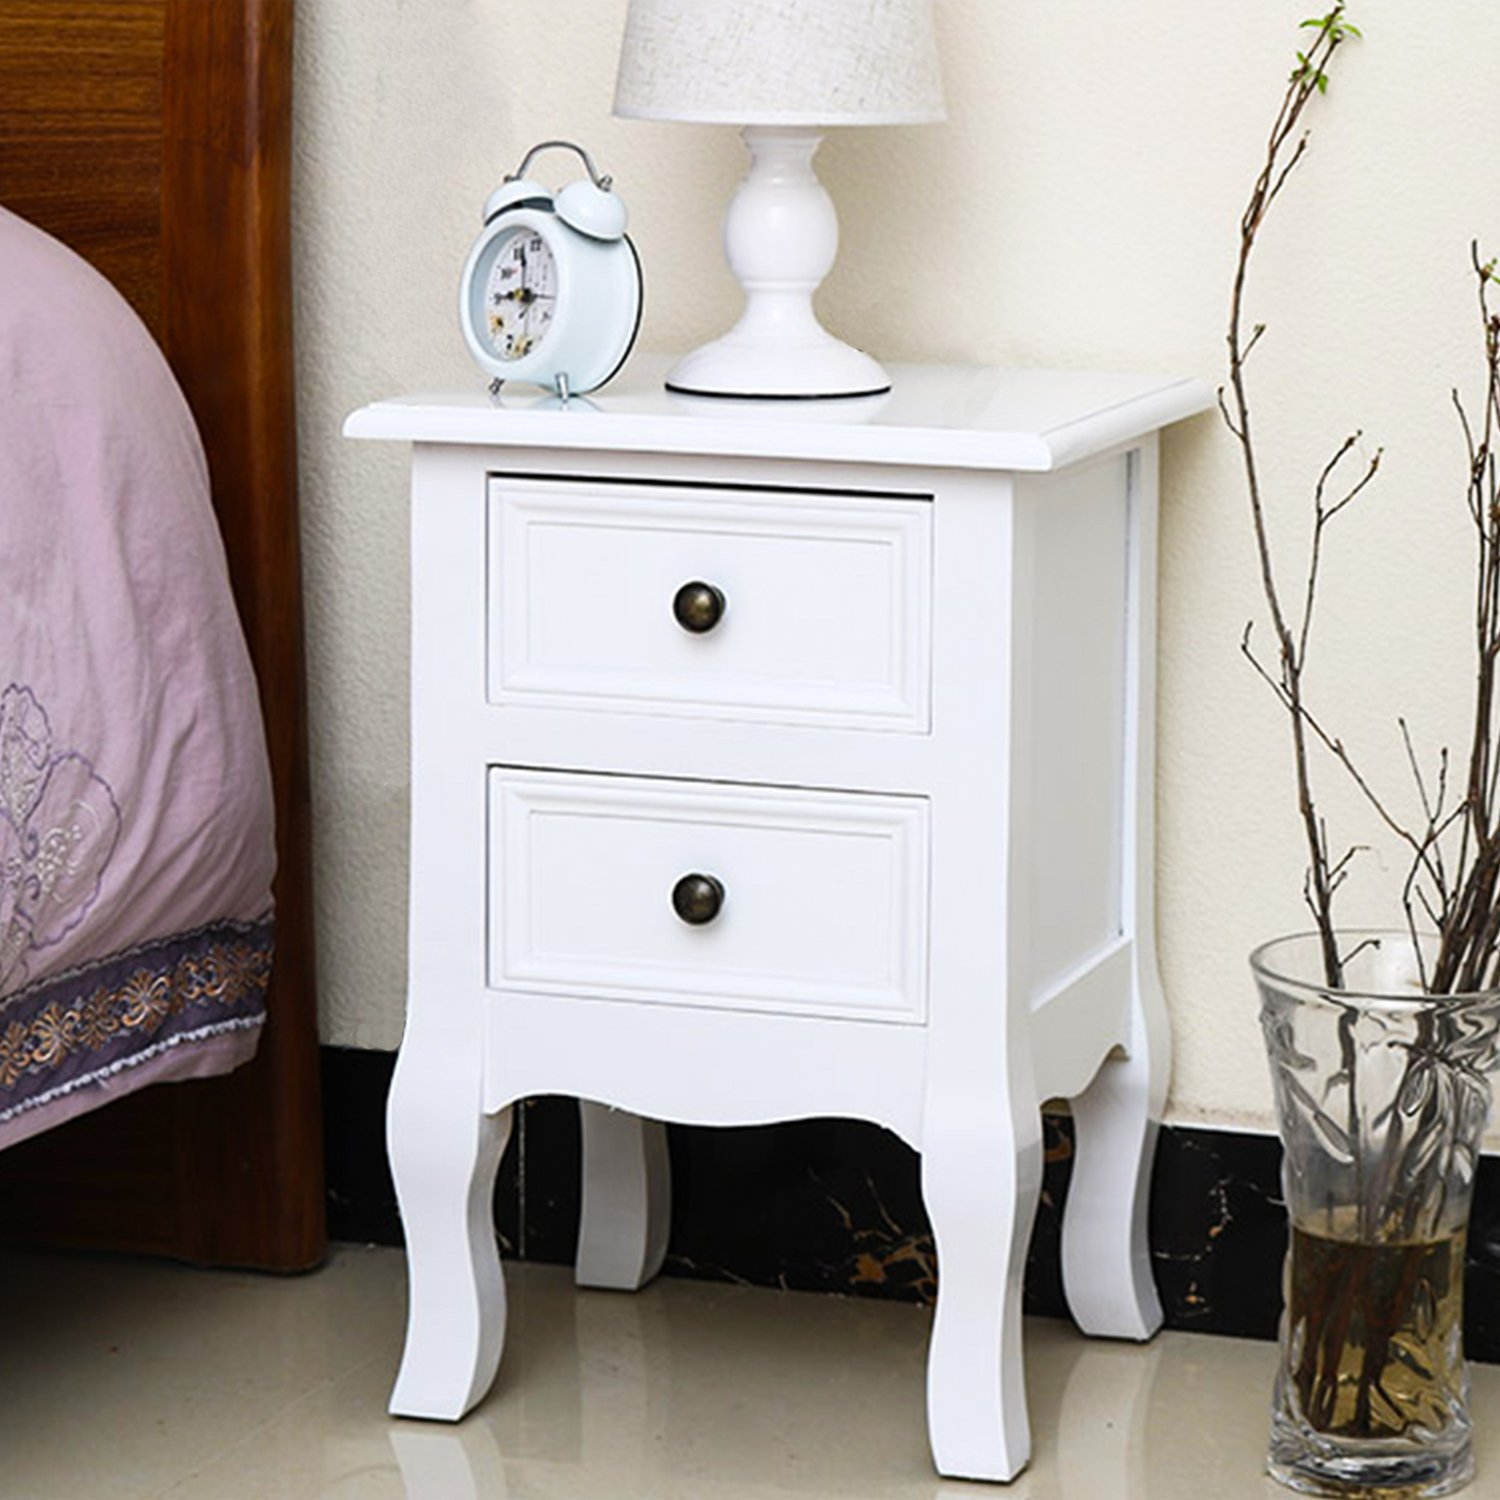 Jerry & Maggie - Mini Nightstand Classic White Loyal Luxury Style - 2 Tier Curving Pattern Sides Night Stand Storage Bedside Table with 2 Drawer Real Natural Paulownia Wood   4 Long Legs White